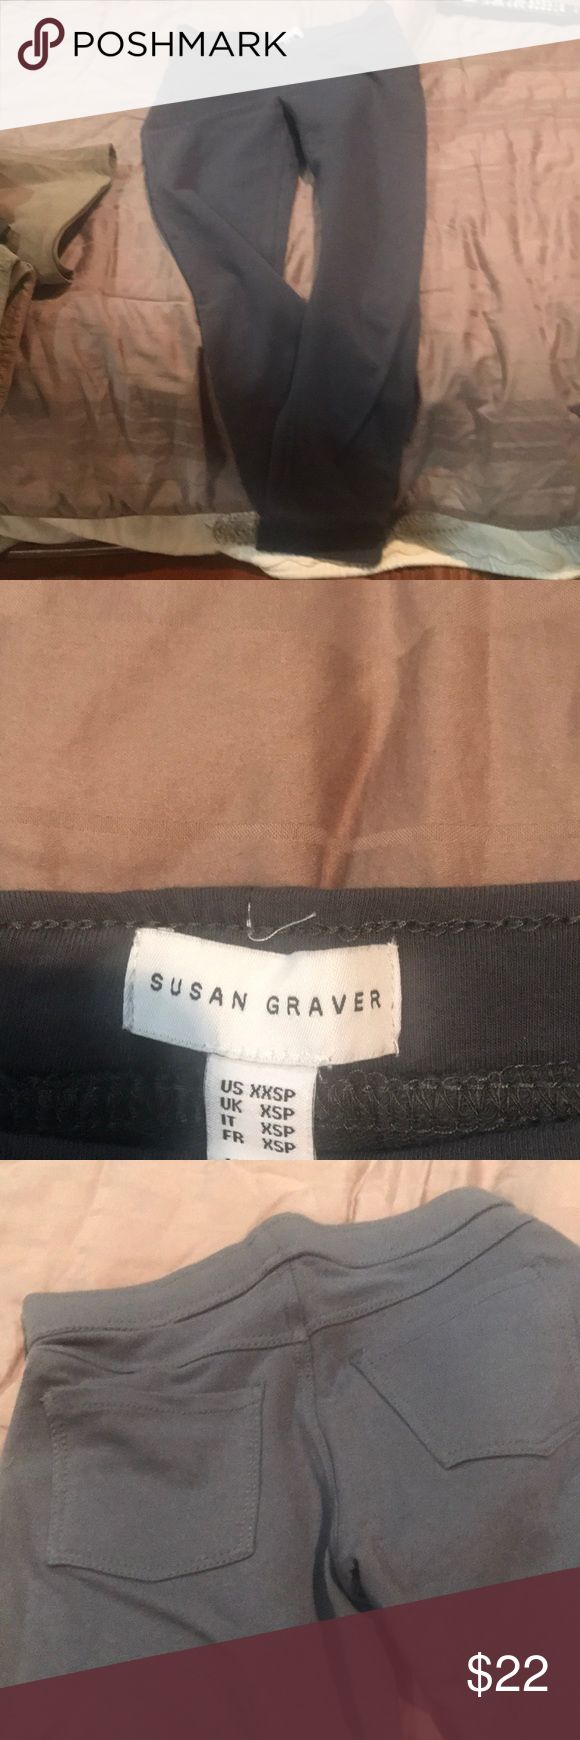 Susan Graver grey legging xxsp never worn!! These are great leggings. Susan Graver is awesome!!!! Excellent for petite. These fit like an xs. Also they are a nice heavier legging pant!! Kind of a cross between a legging and pant. I bought these pants on QVC. Susan Graver knows how to style for the petite body. I gotta say, I know. I'm a short gal. Now, her sizes in my opinion run a little big, so an xxs is more or an xs to me.  I have these pants in xs, and those are like smalls. susan…